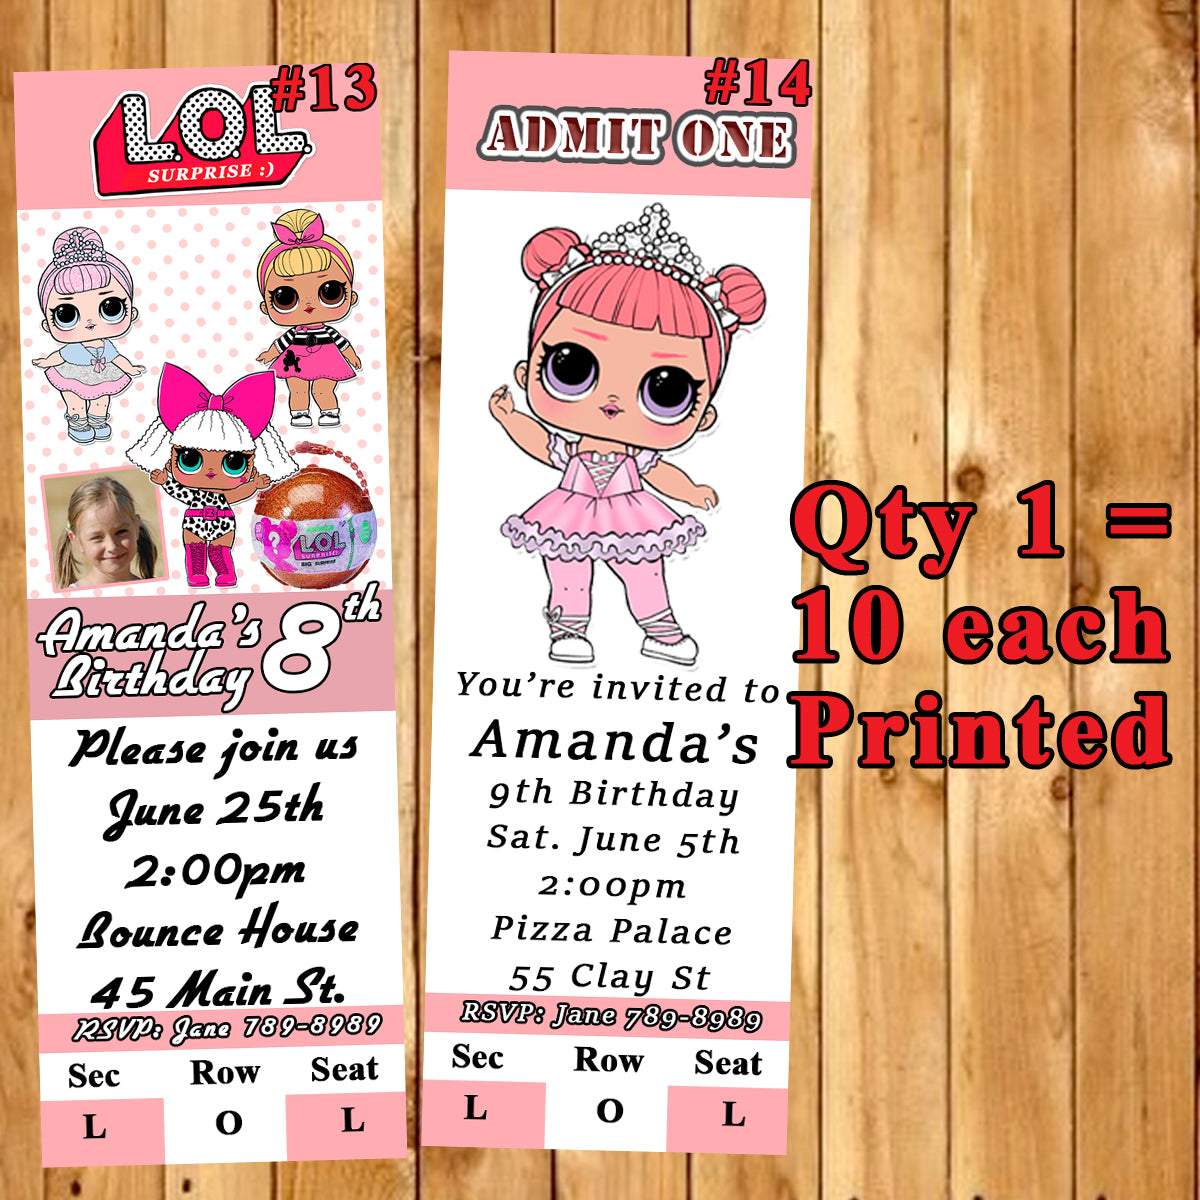 Lol Surprise Doll Birthday Invitations 10 Each Printed Personalized Wi Virginia Design Shop